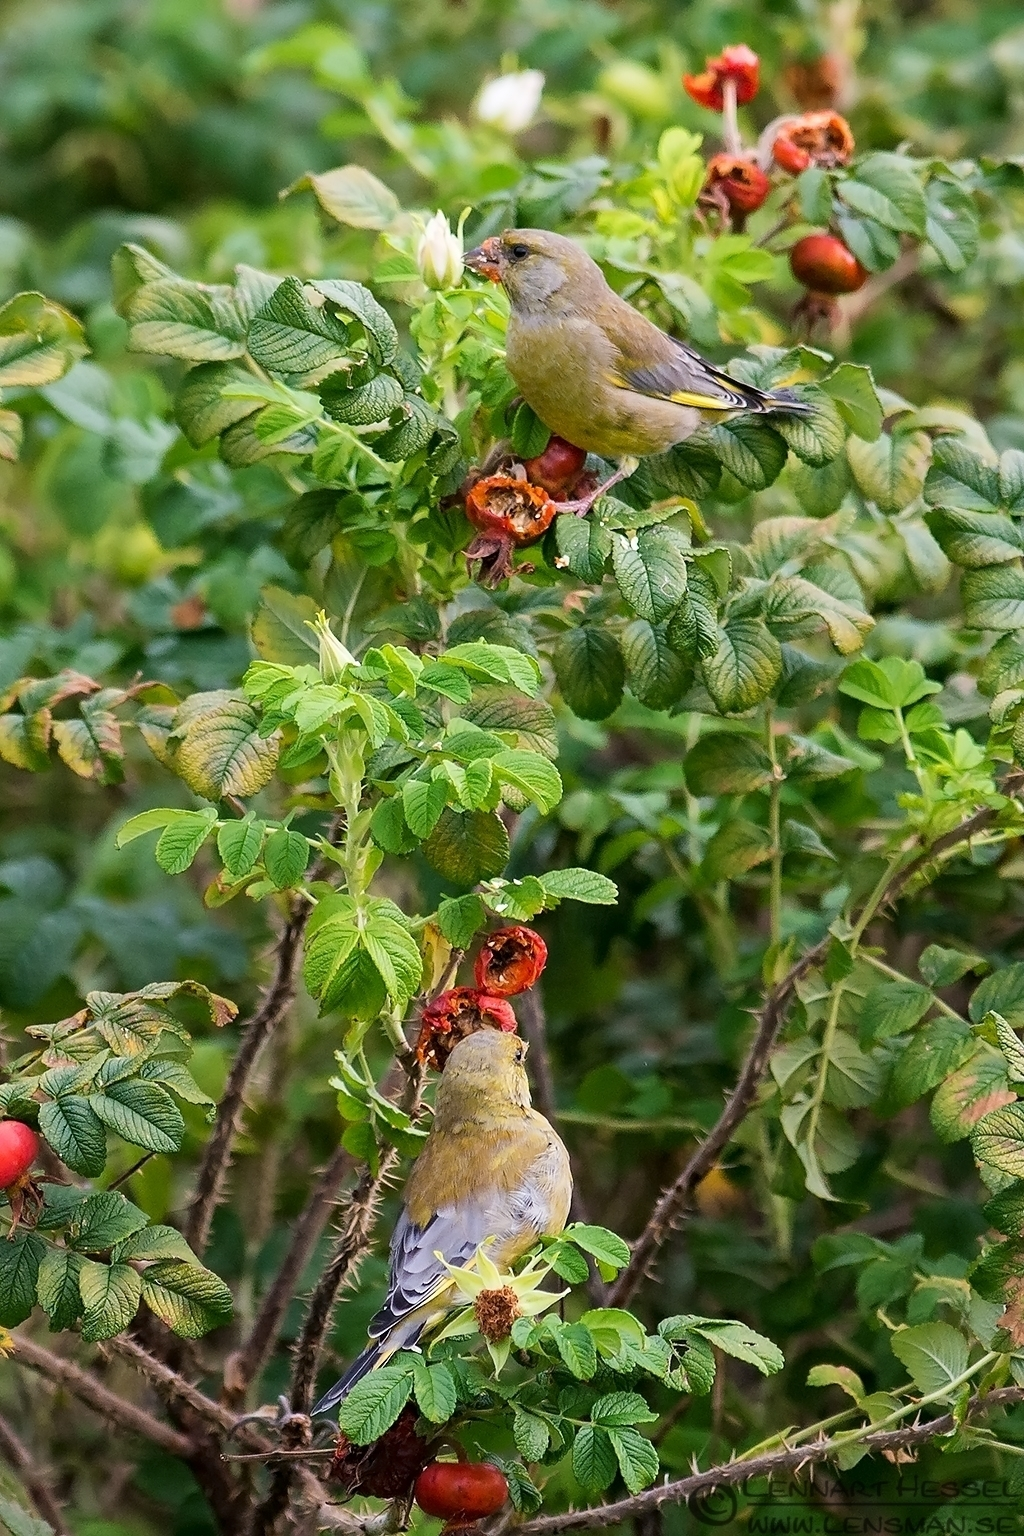 Greenfinches eating rose hip, greenfinch